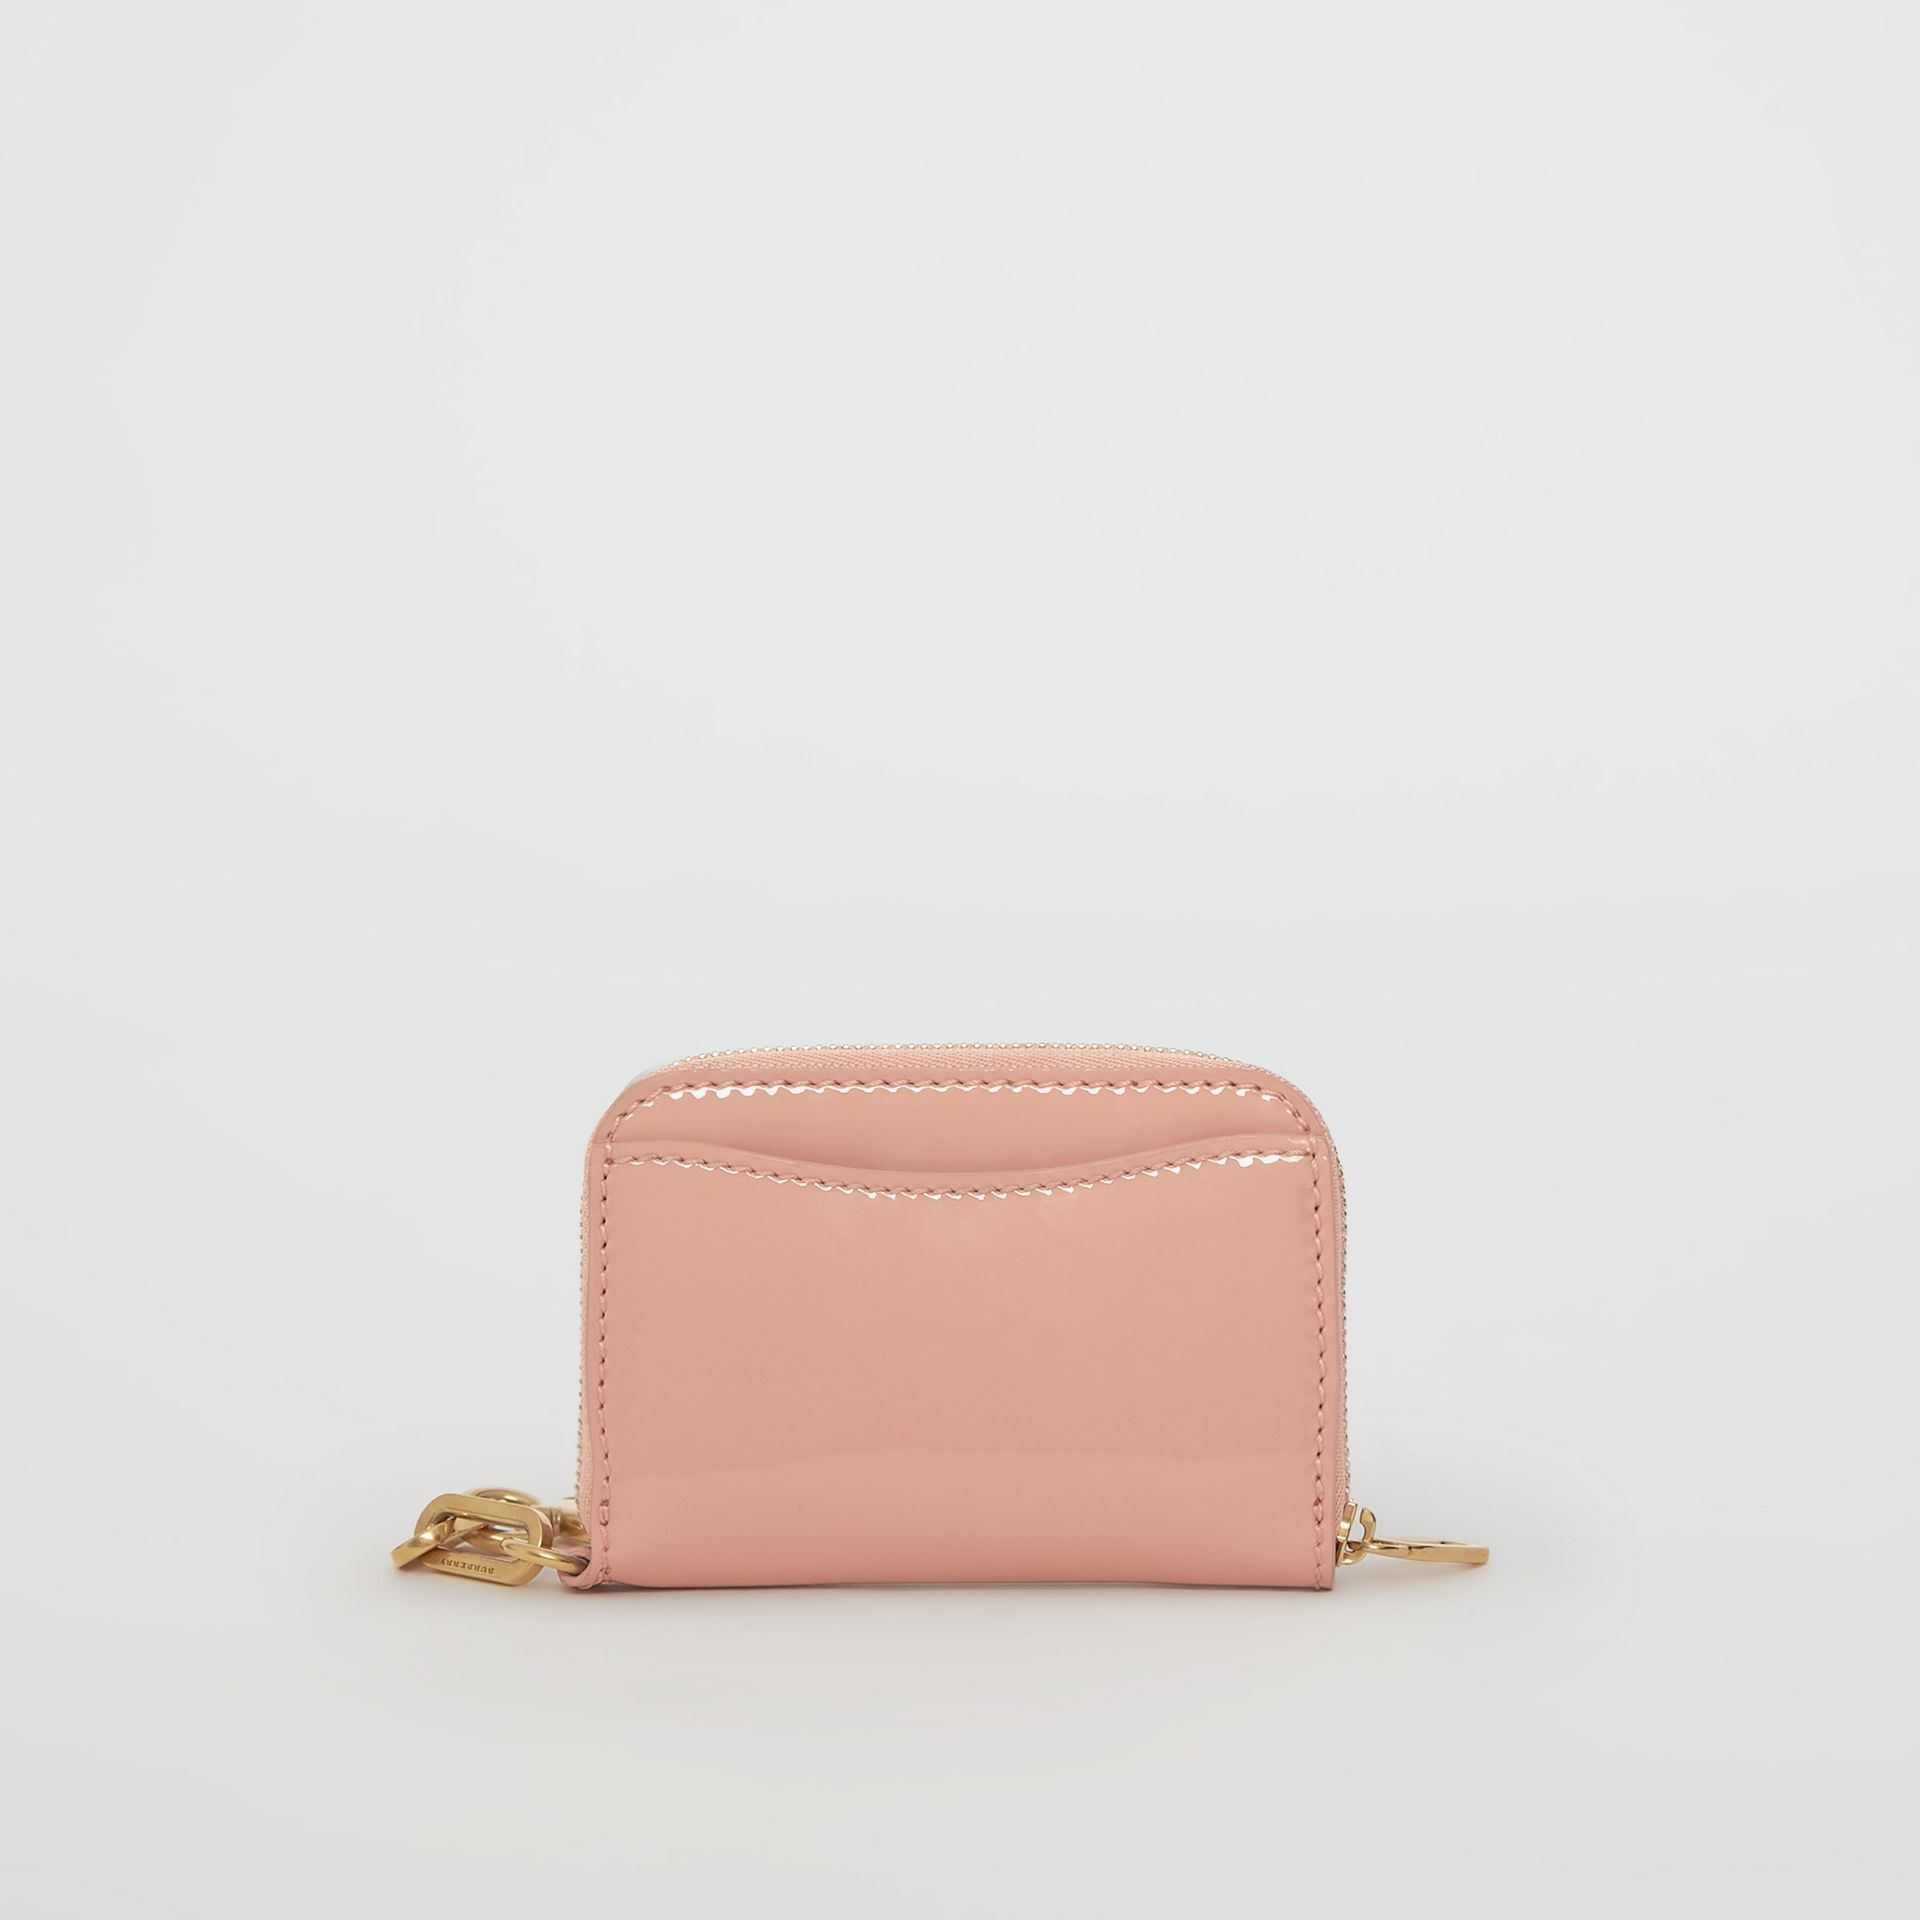 Link Detail Patent Leather Ziparound Wallet in Pale Fawn Pink - Women | Burberry - gallery image 5